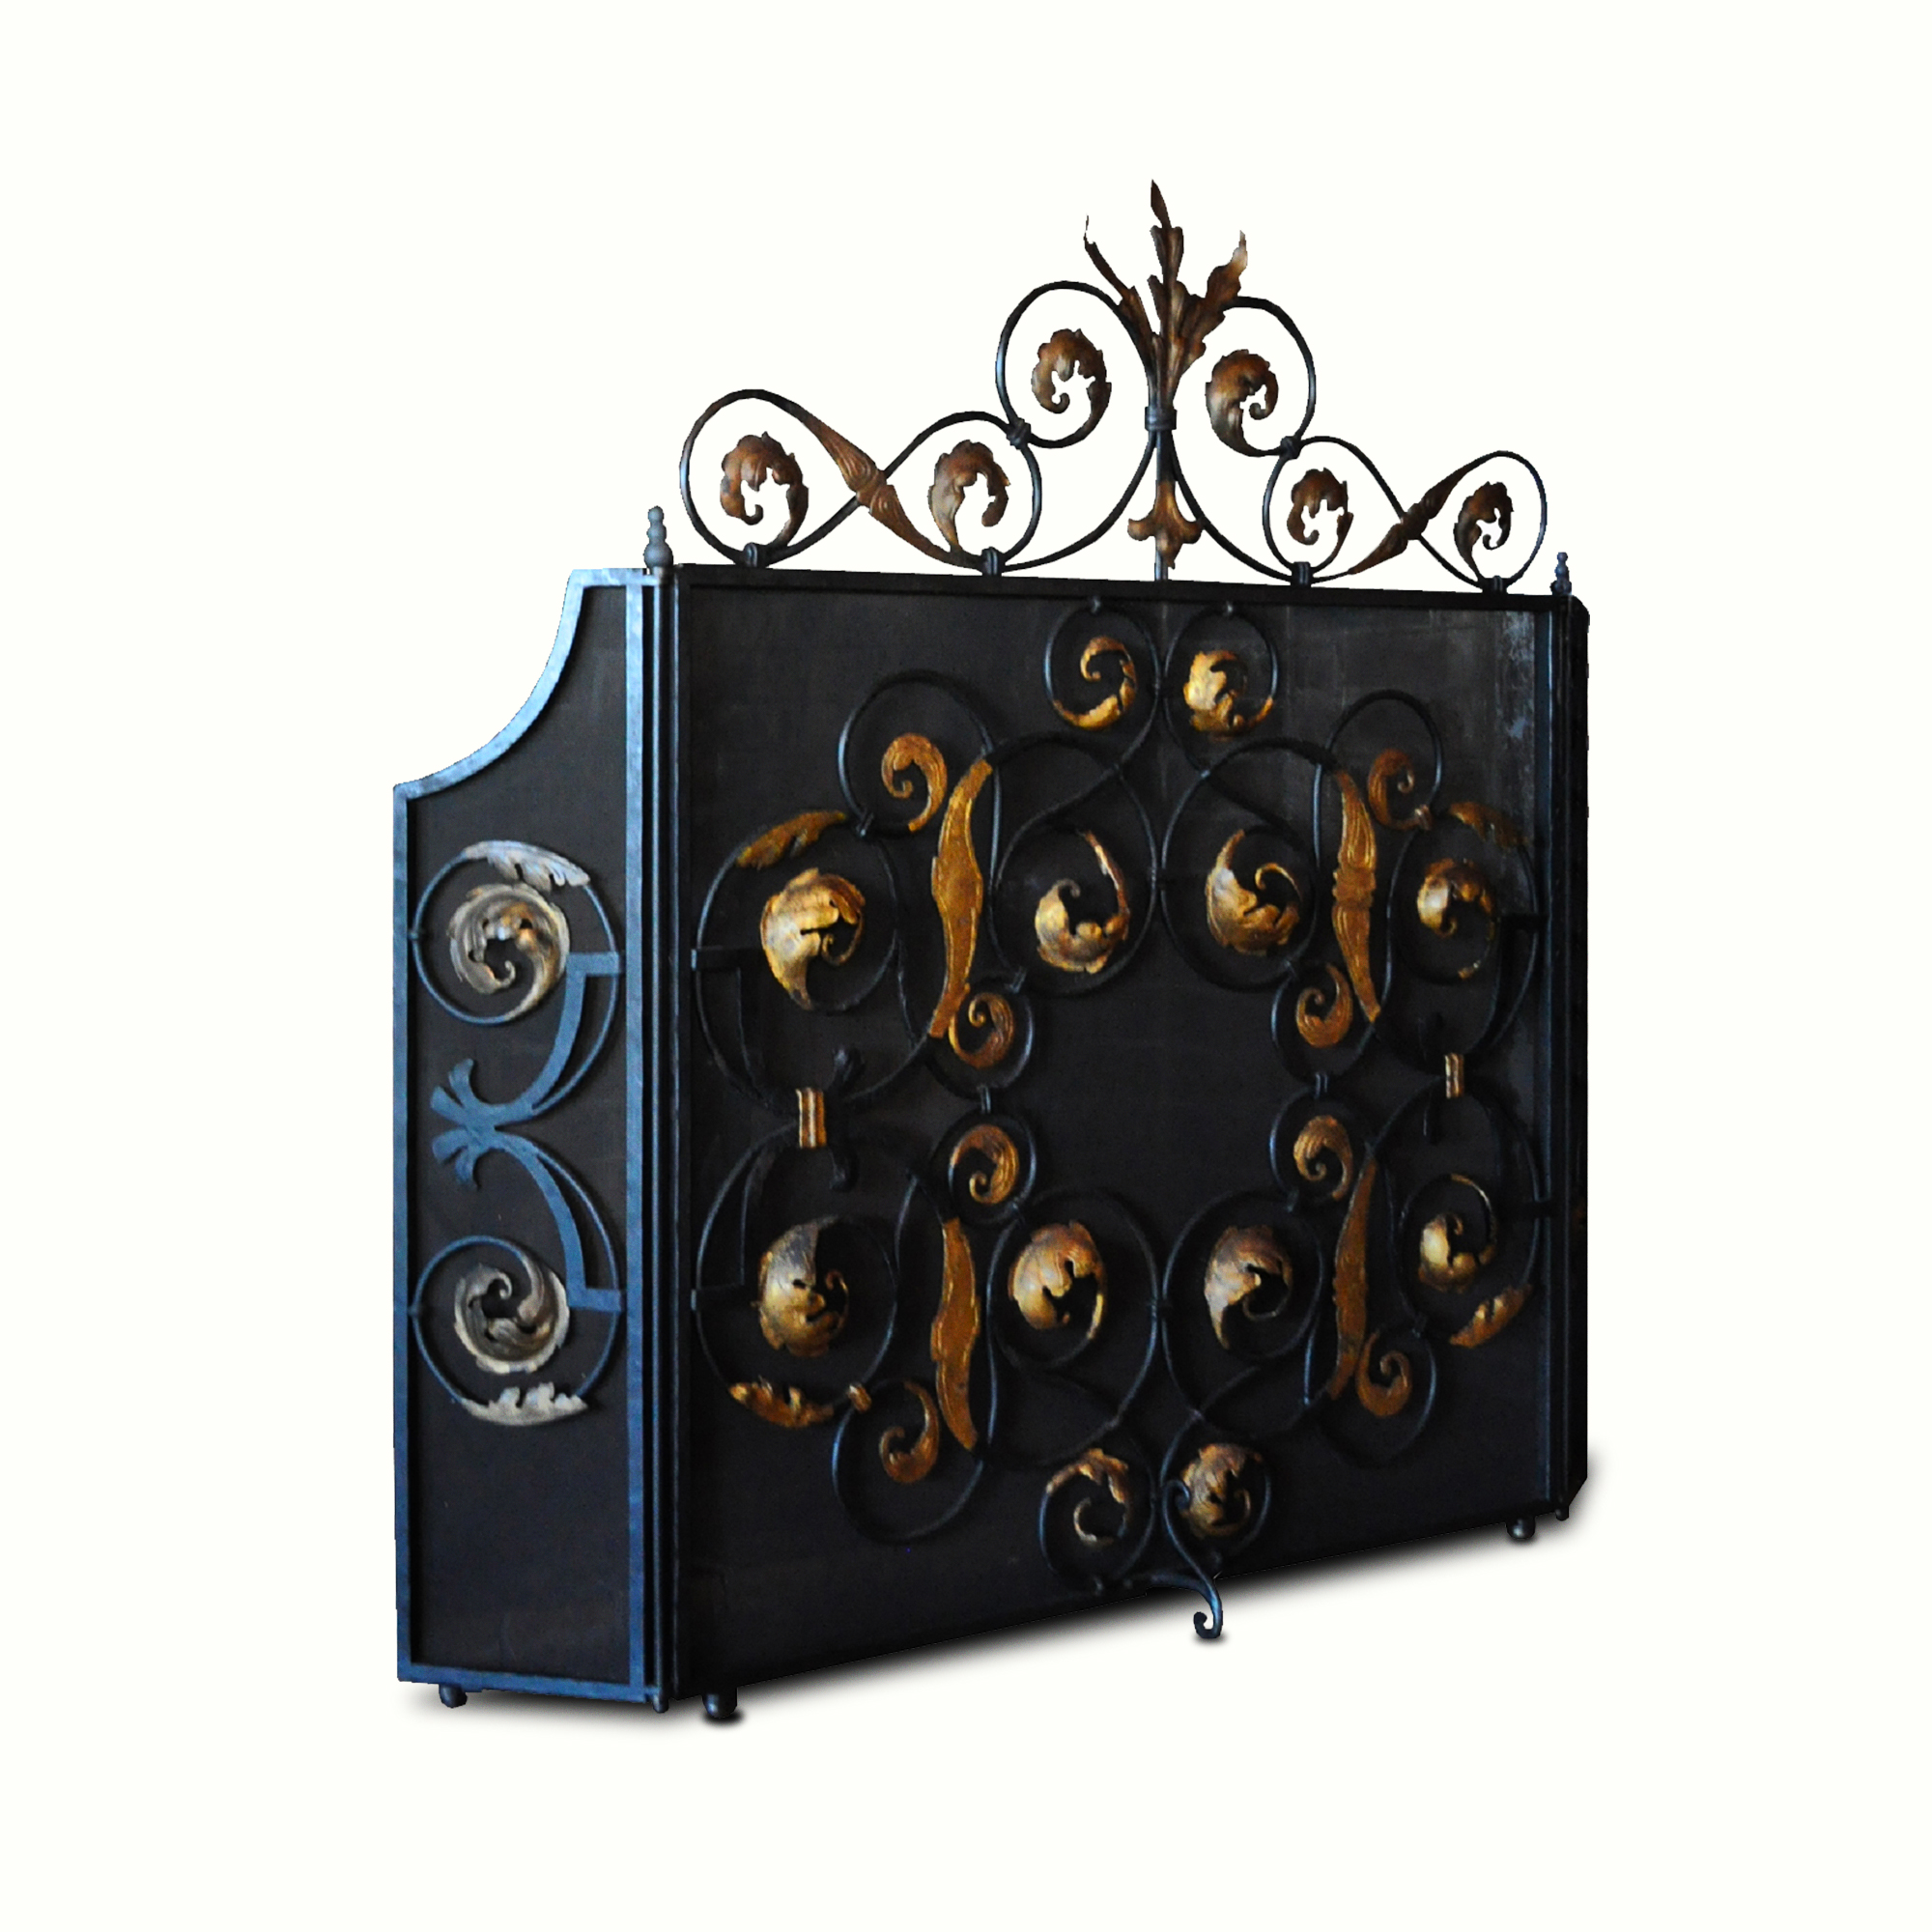 12007-ir Hearst Castle Fireplace Screen – ADG Lighting Collection